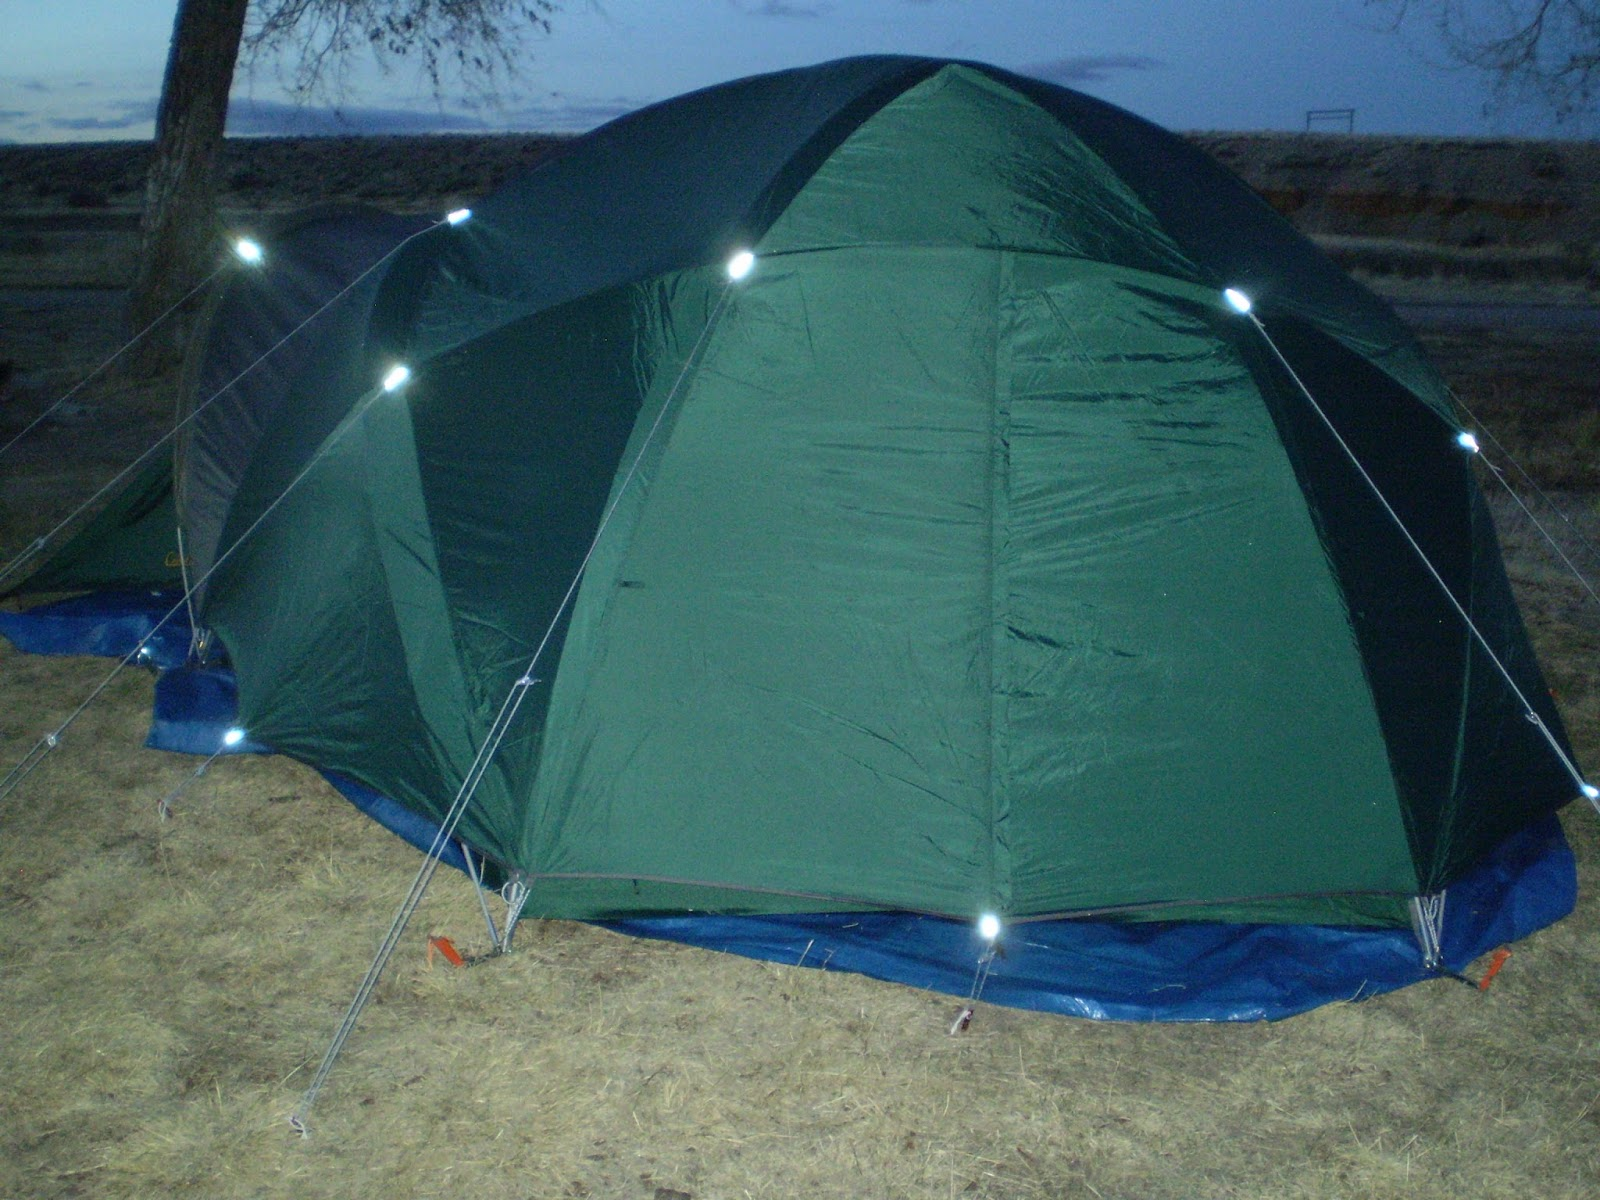 At the top are three mesh roof vents which do not have the option of being closed. & Fly Fishing the West with Howard: Alaskan Guide Model Tent Review ...